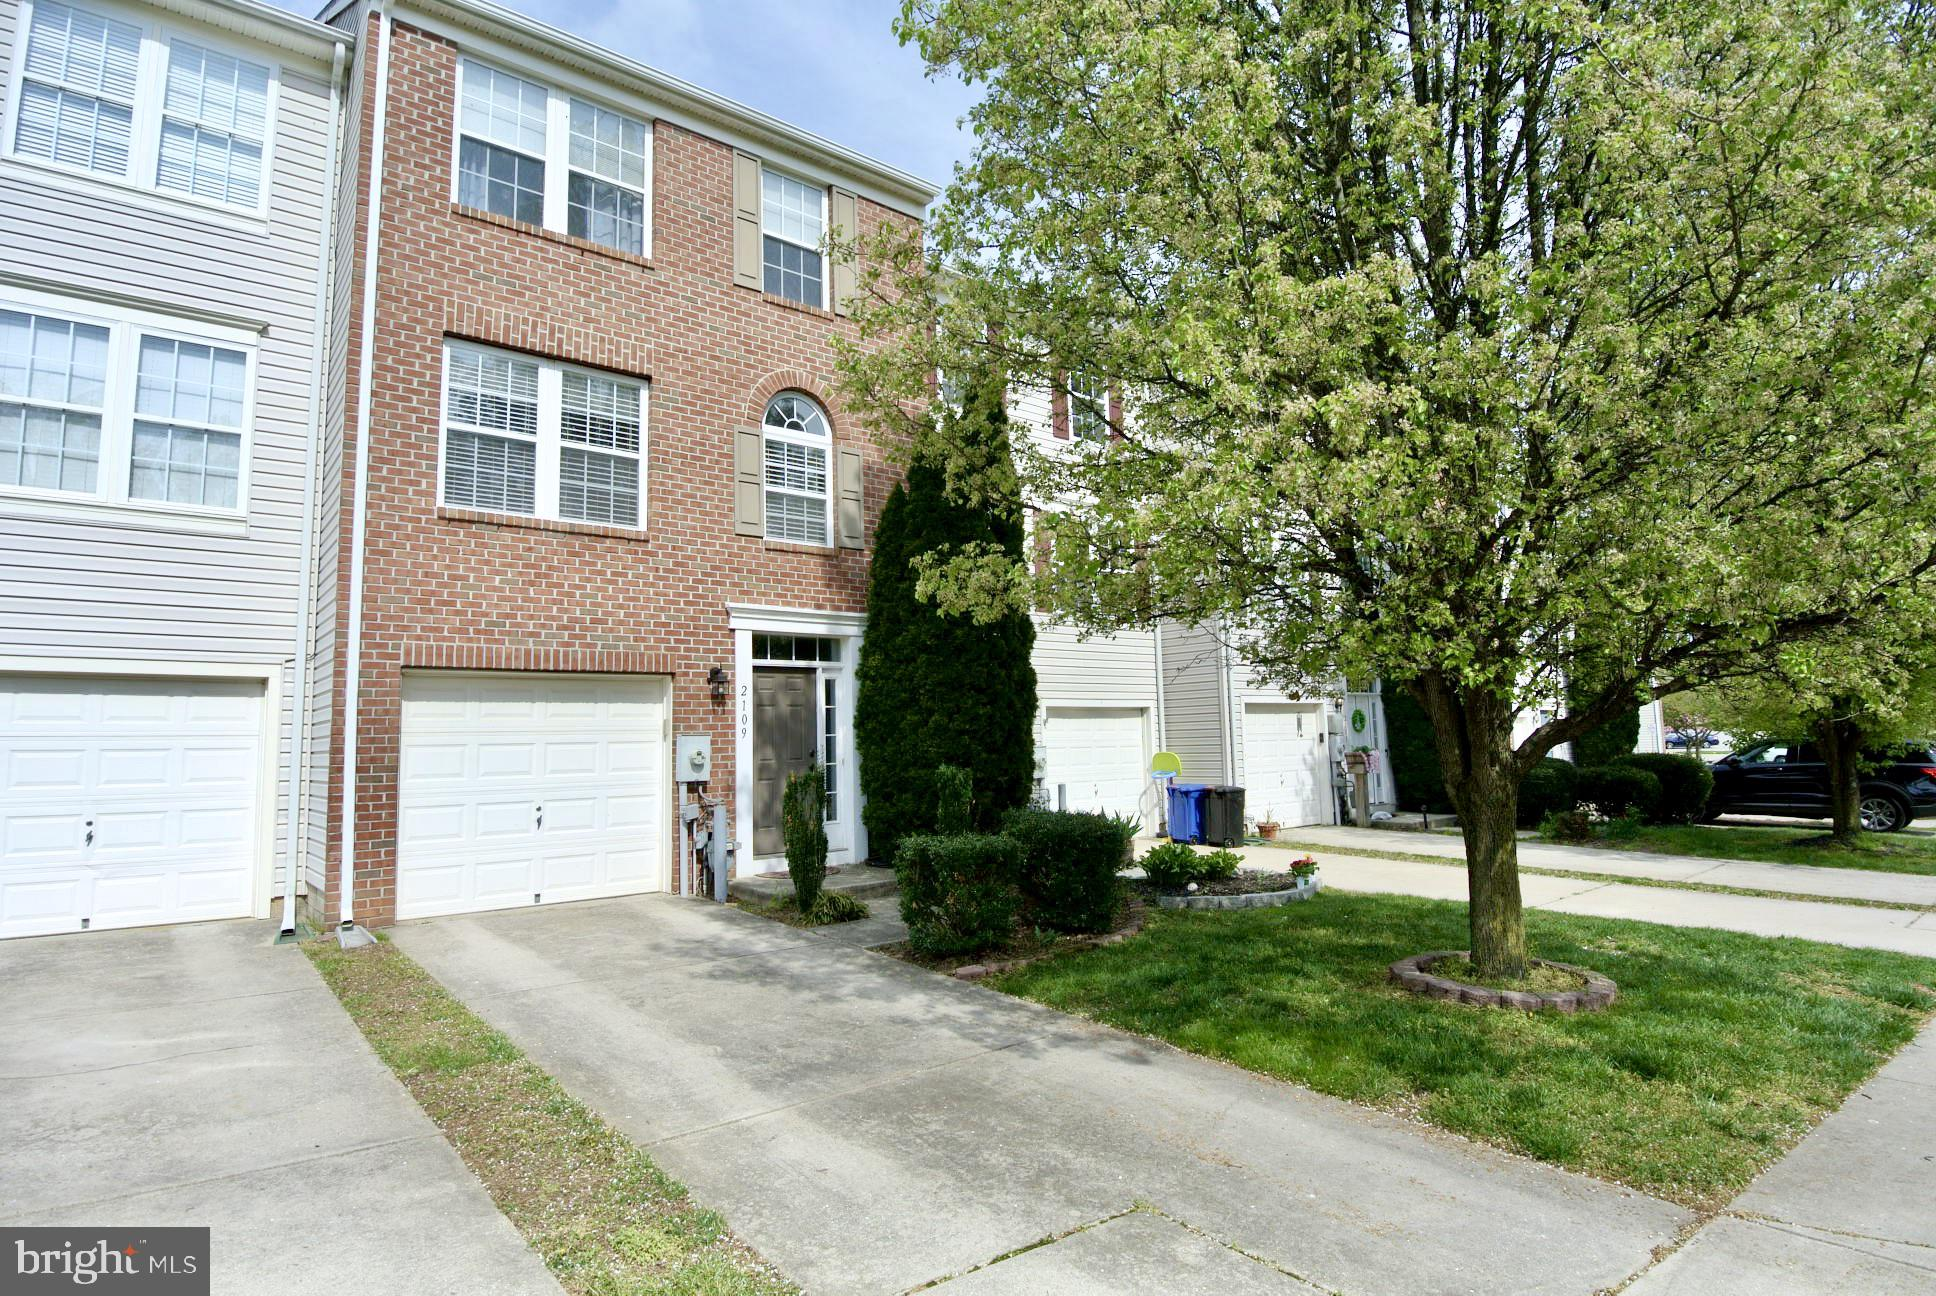 2109 Mardic Dr, Forest Hill, MD, 21050